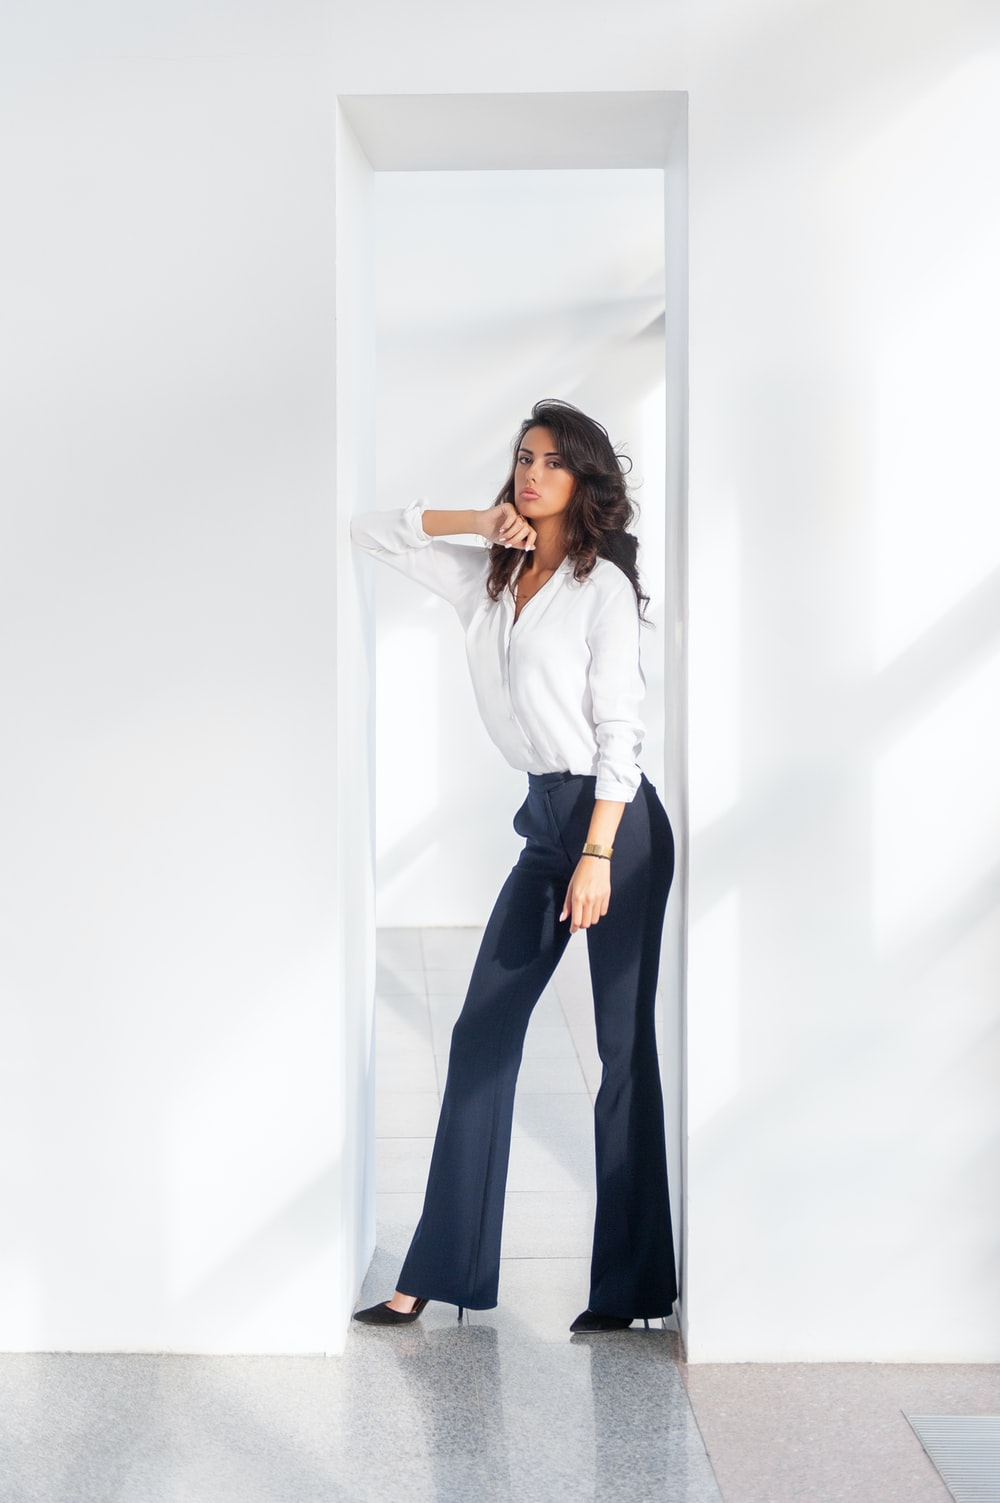 woman in white long sleeve shirt and blue pants